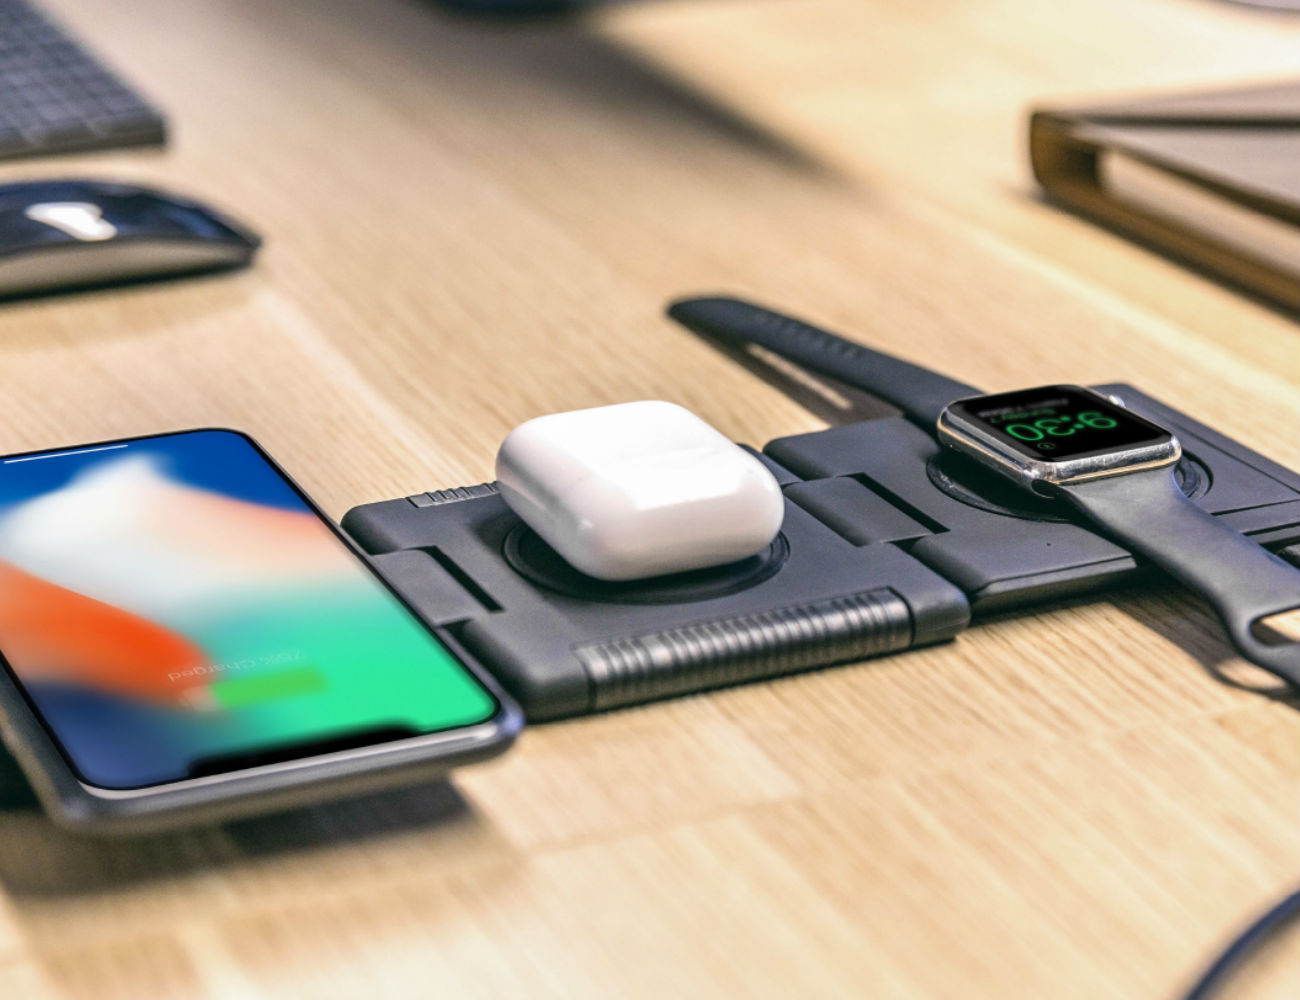 Unravel Portable Fast Wireless Charging Station